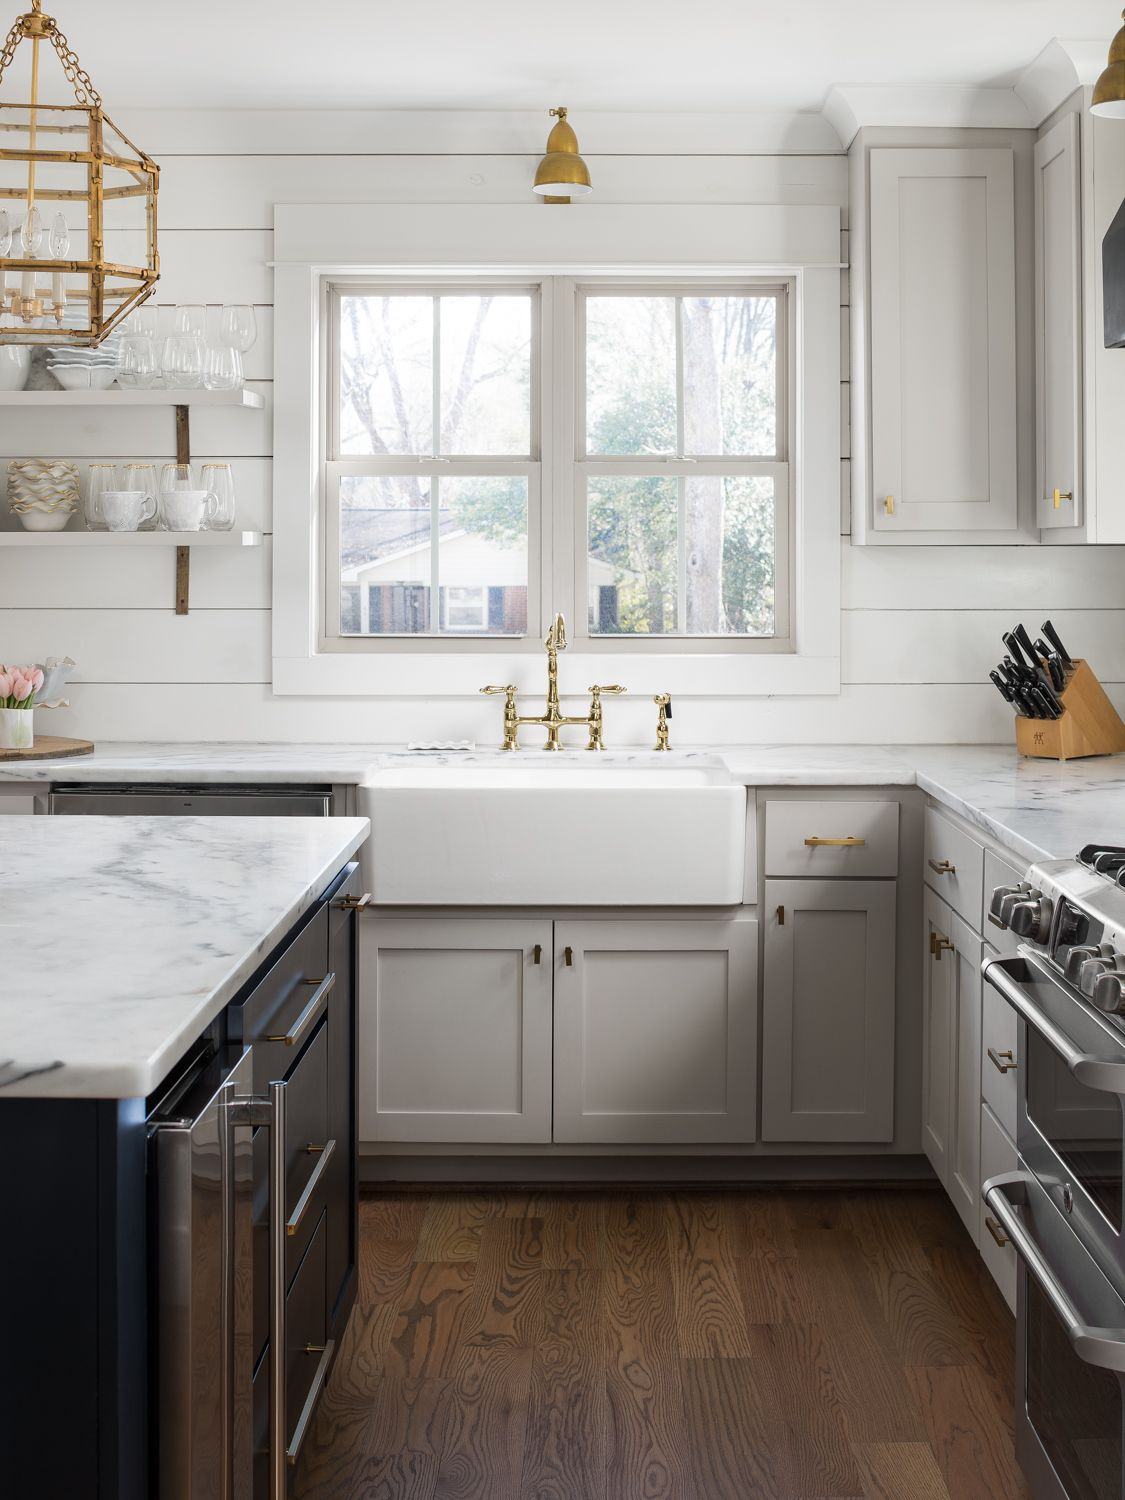 600 Forest Willow Homes 0010 Jpg In 2020 Kitchen Cabinet Colors New Kitchen Cabinets Benjamin Moore Kitchen